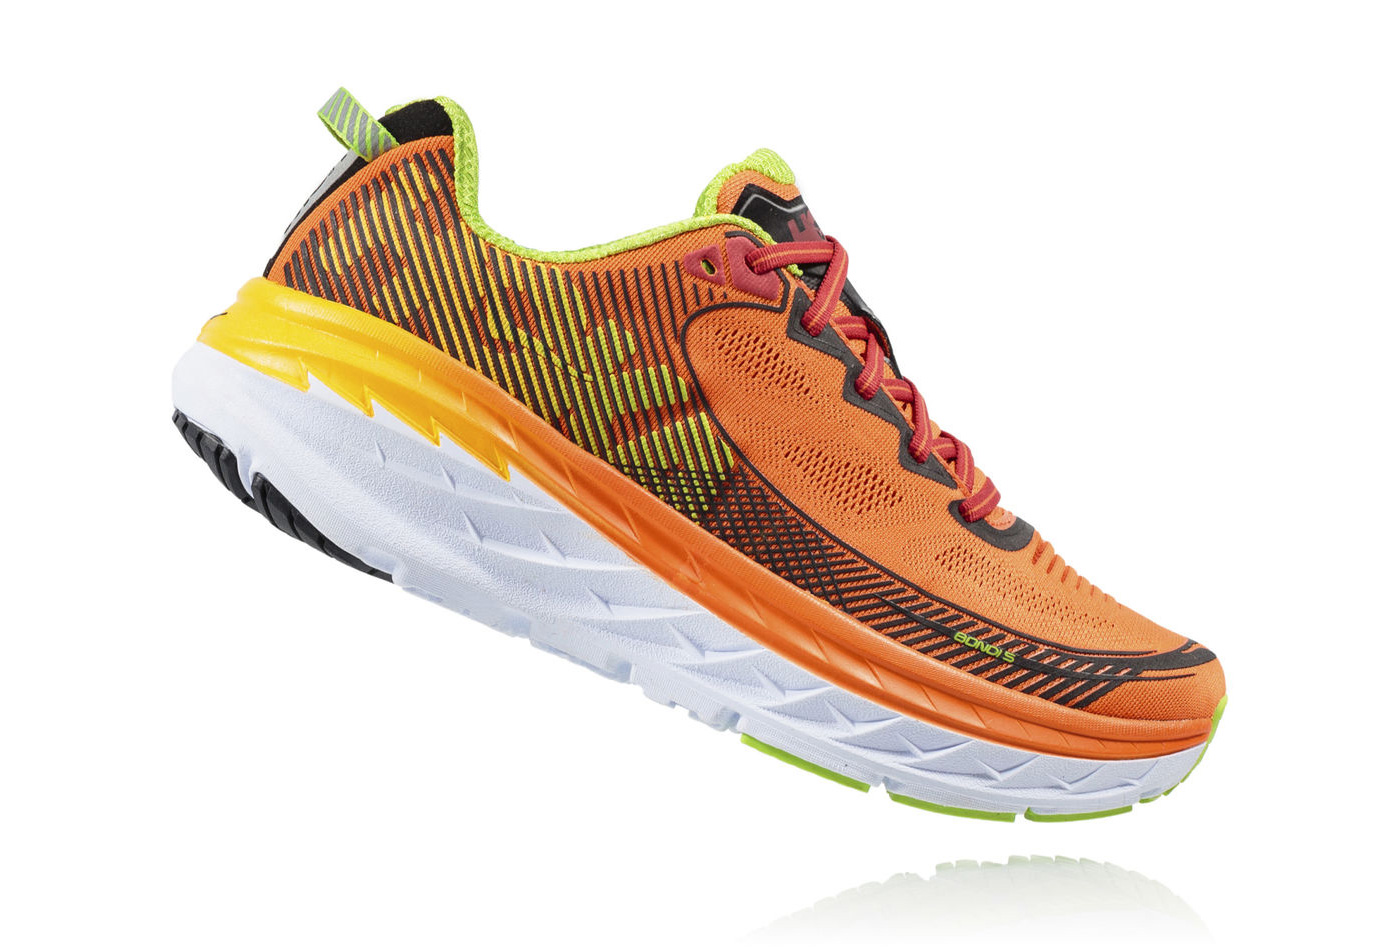 Hoka Bondi B Shoes For Sale